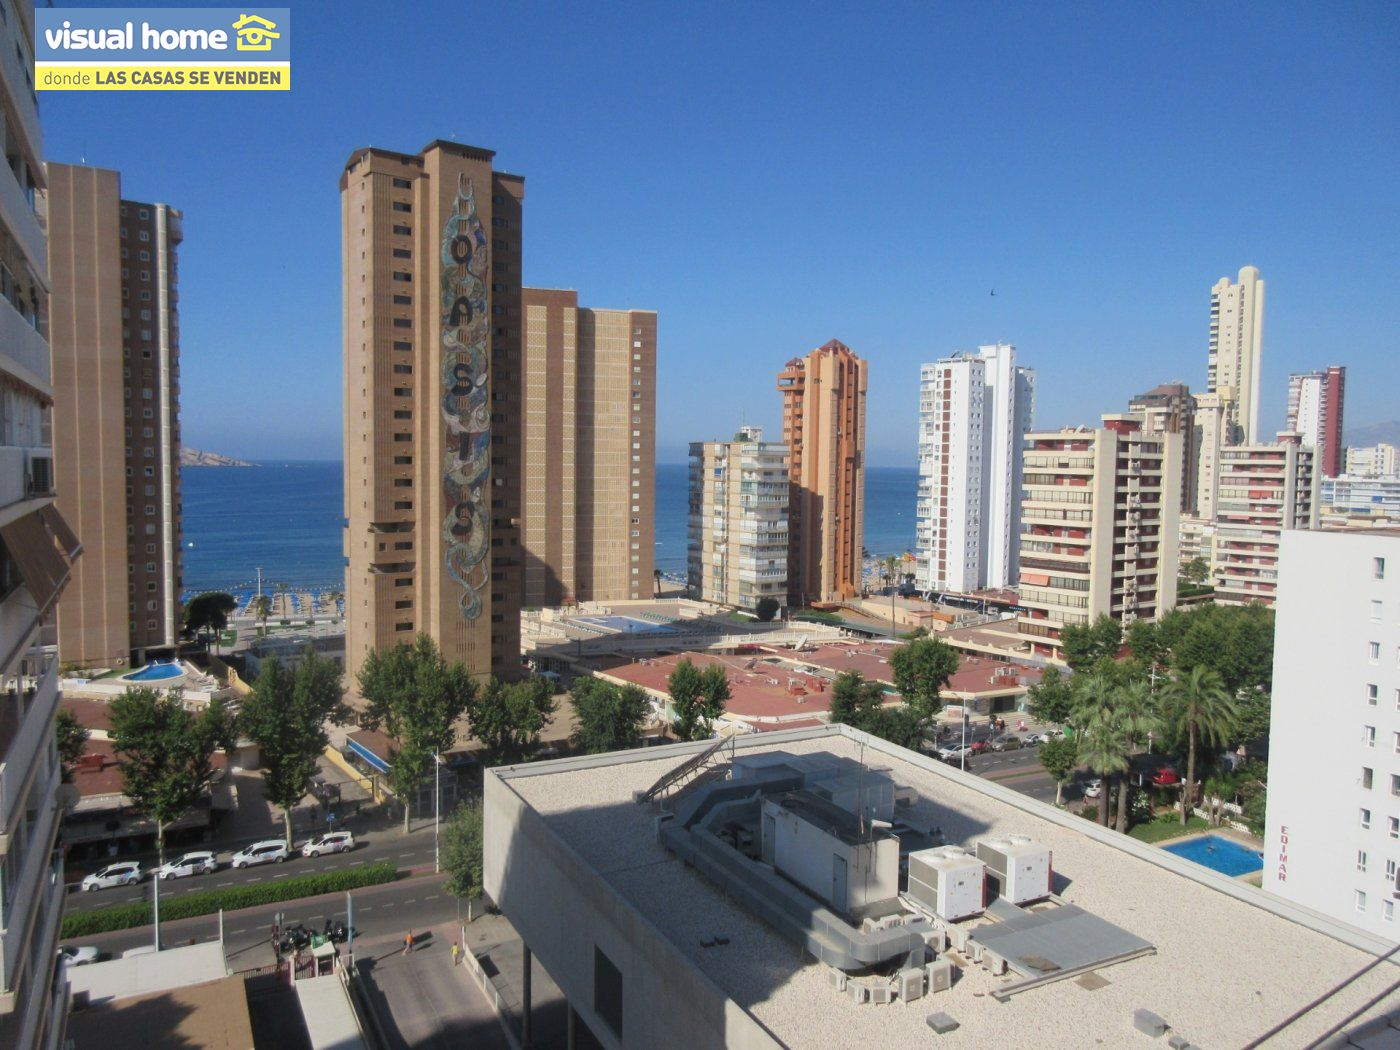 Apartamento de un dormitorio con vistas al mar,  parking y piscina  a 200 mts de la playa Levante 15